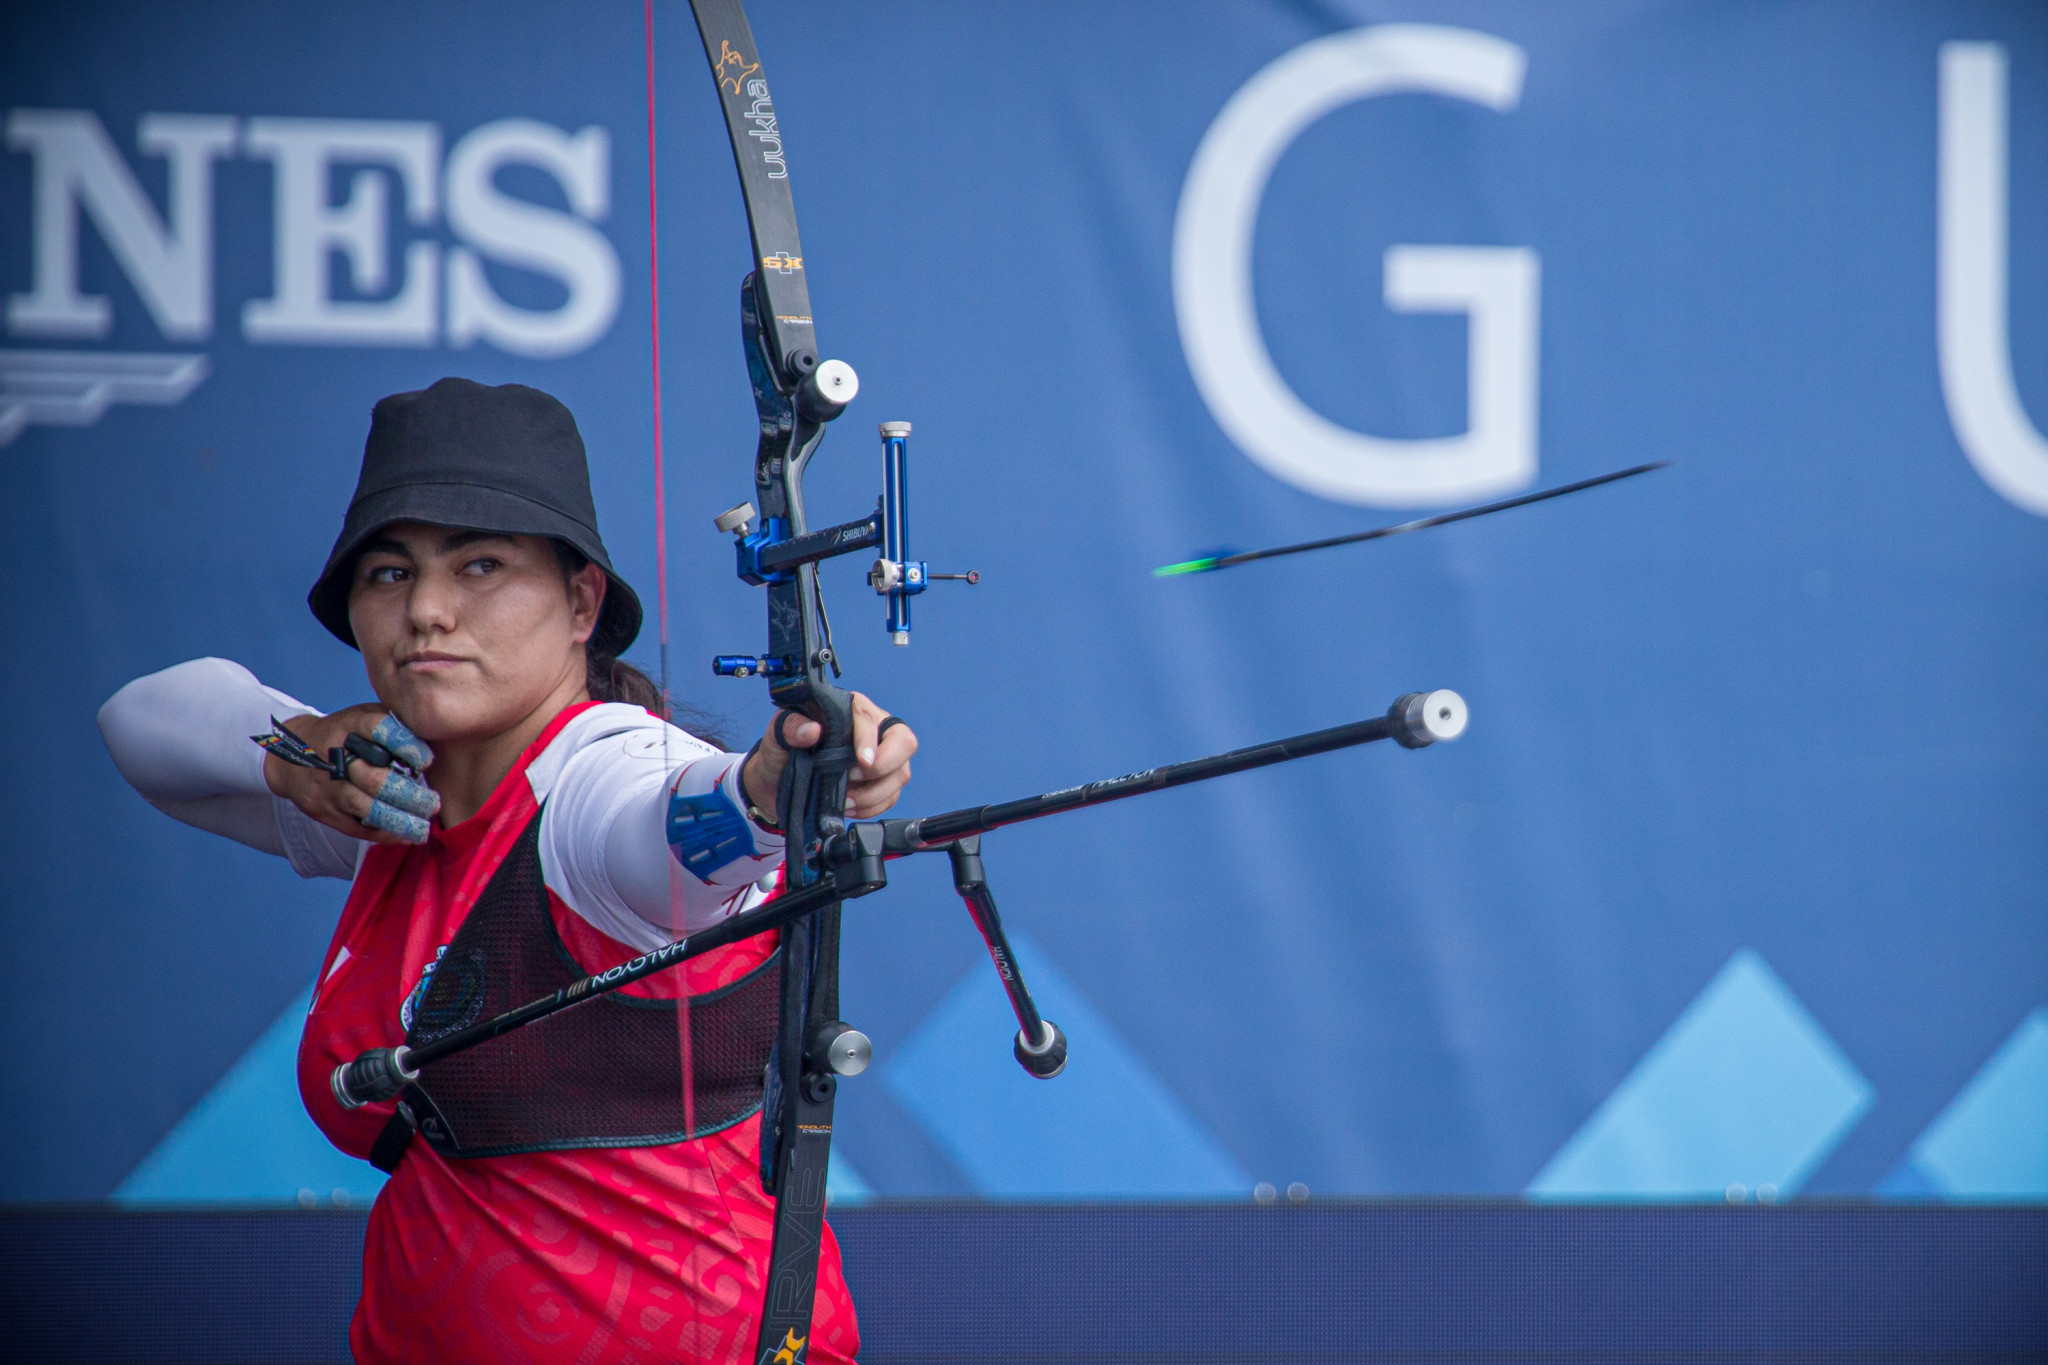 Valencia and Wieser top recurve qualification at Archery World Cup in Paris